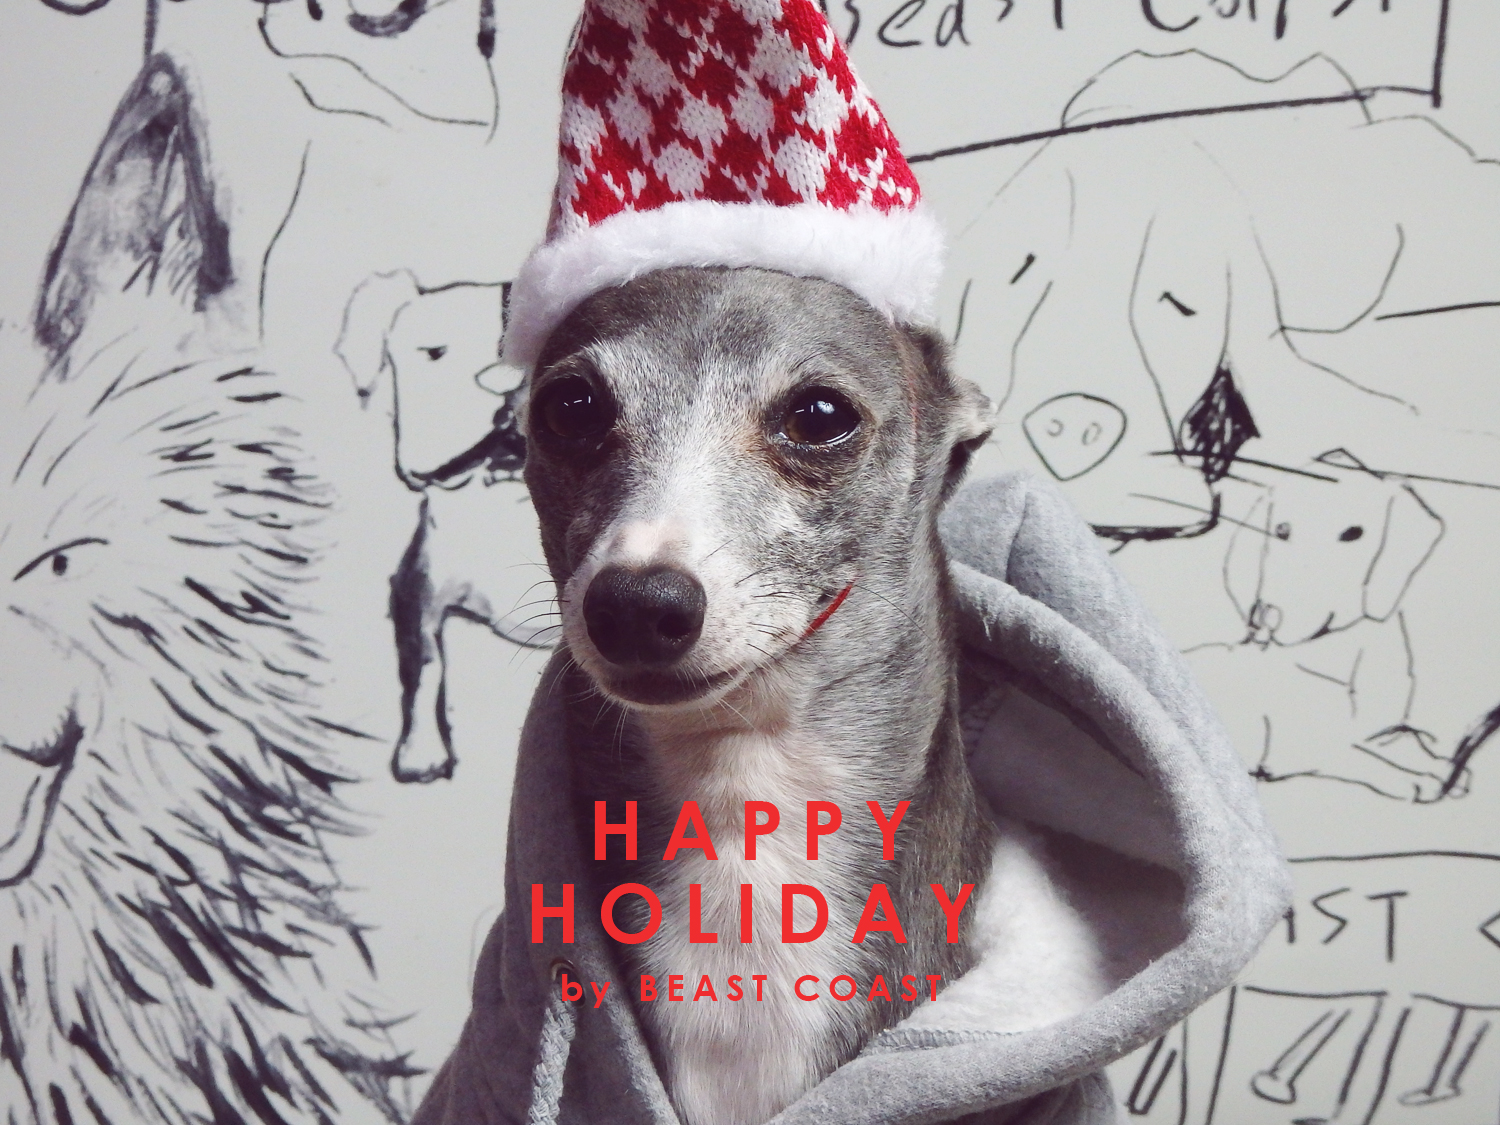 HAPPY HOLIDAY by Beast Coast / Darco